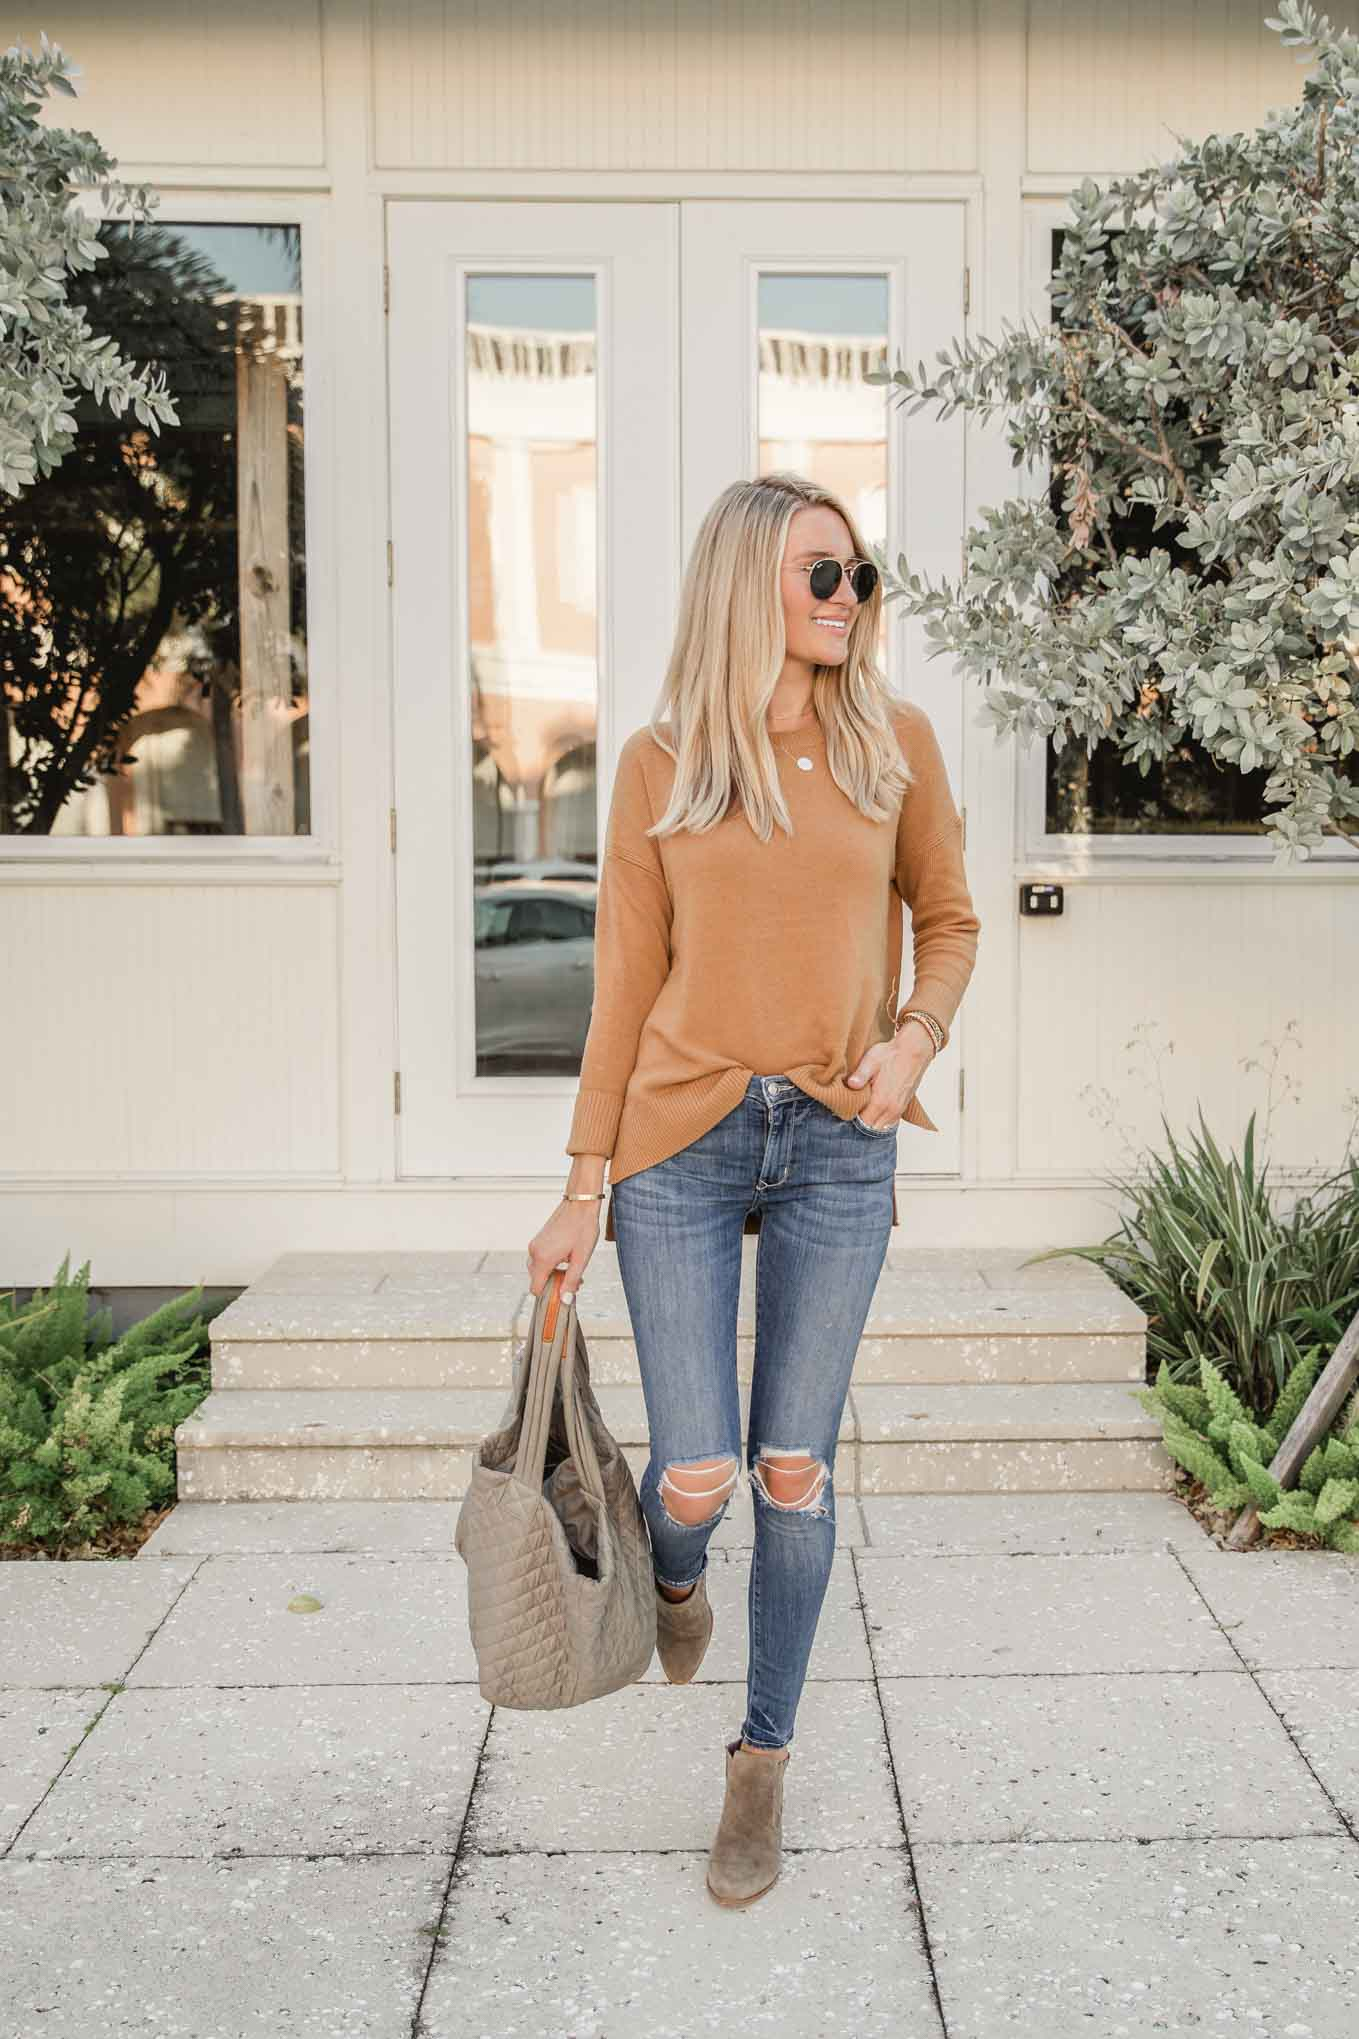 Tan sweater and distressed denim